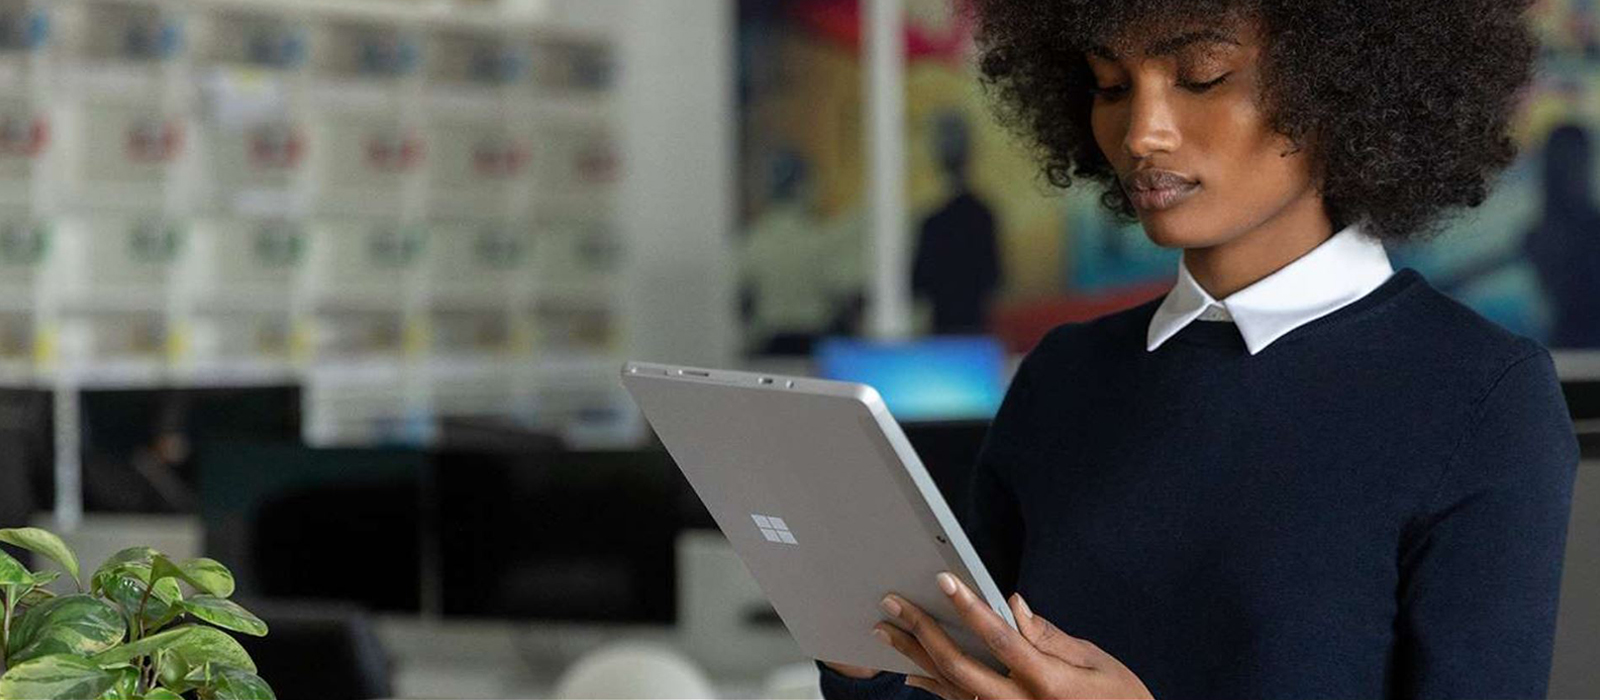 A woman works with the Surface Go 2 in tablet mode